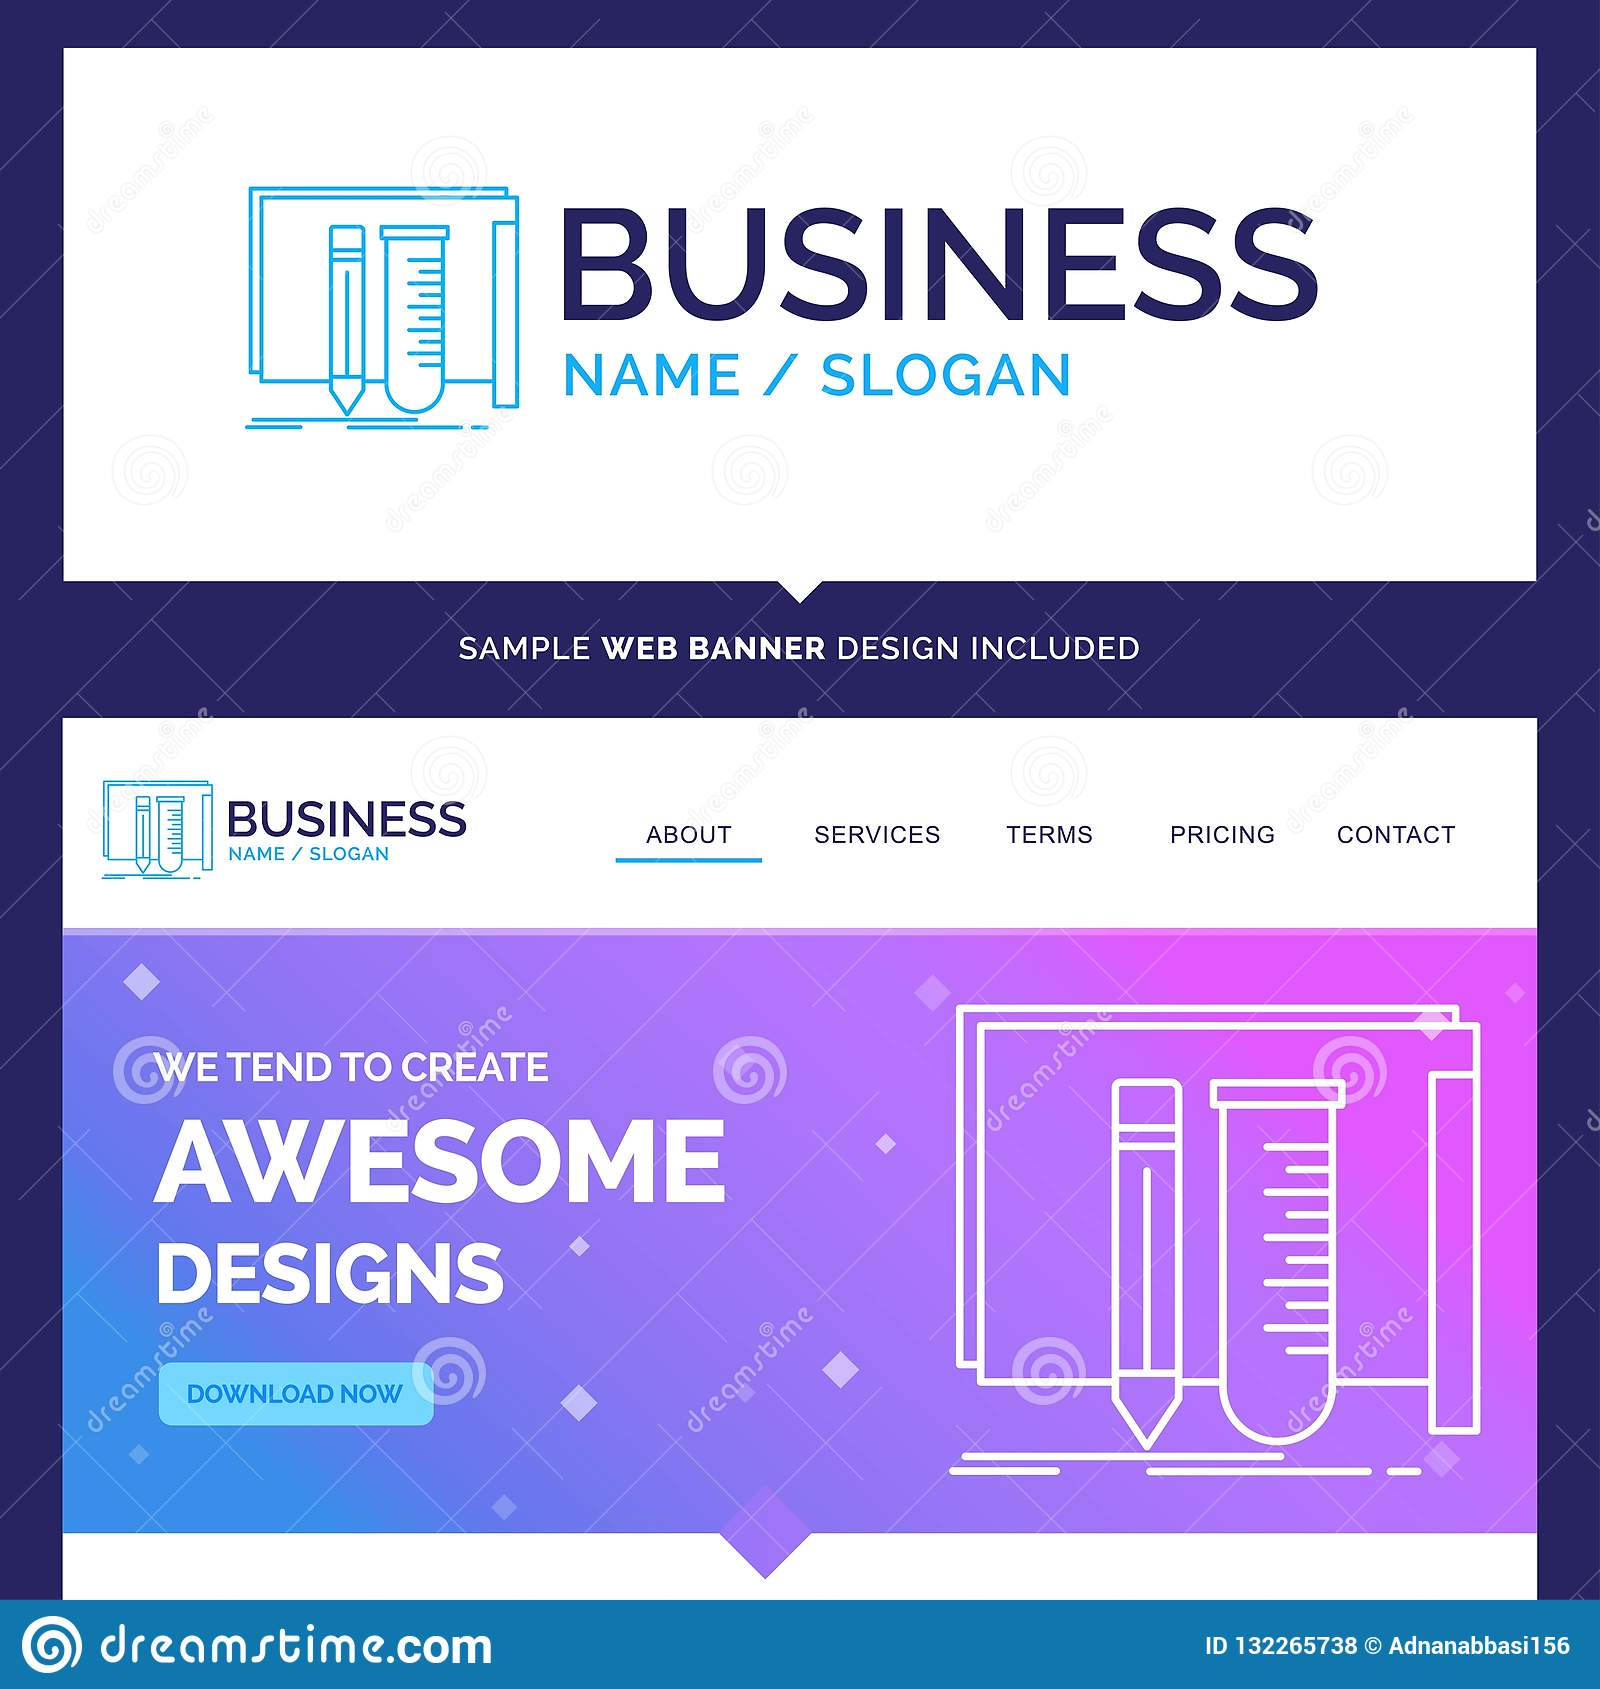 Beautiful Business Concept Brand Name Build Equipment Fab Lab